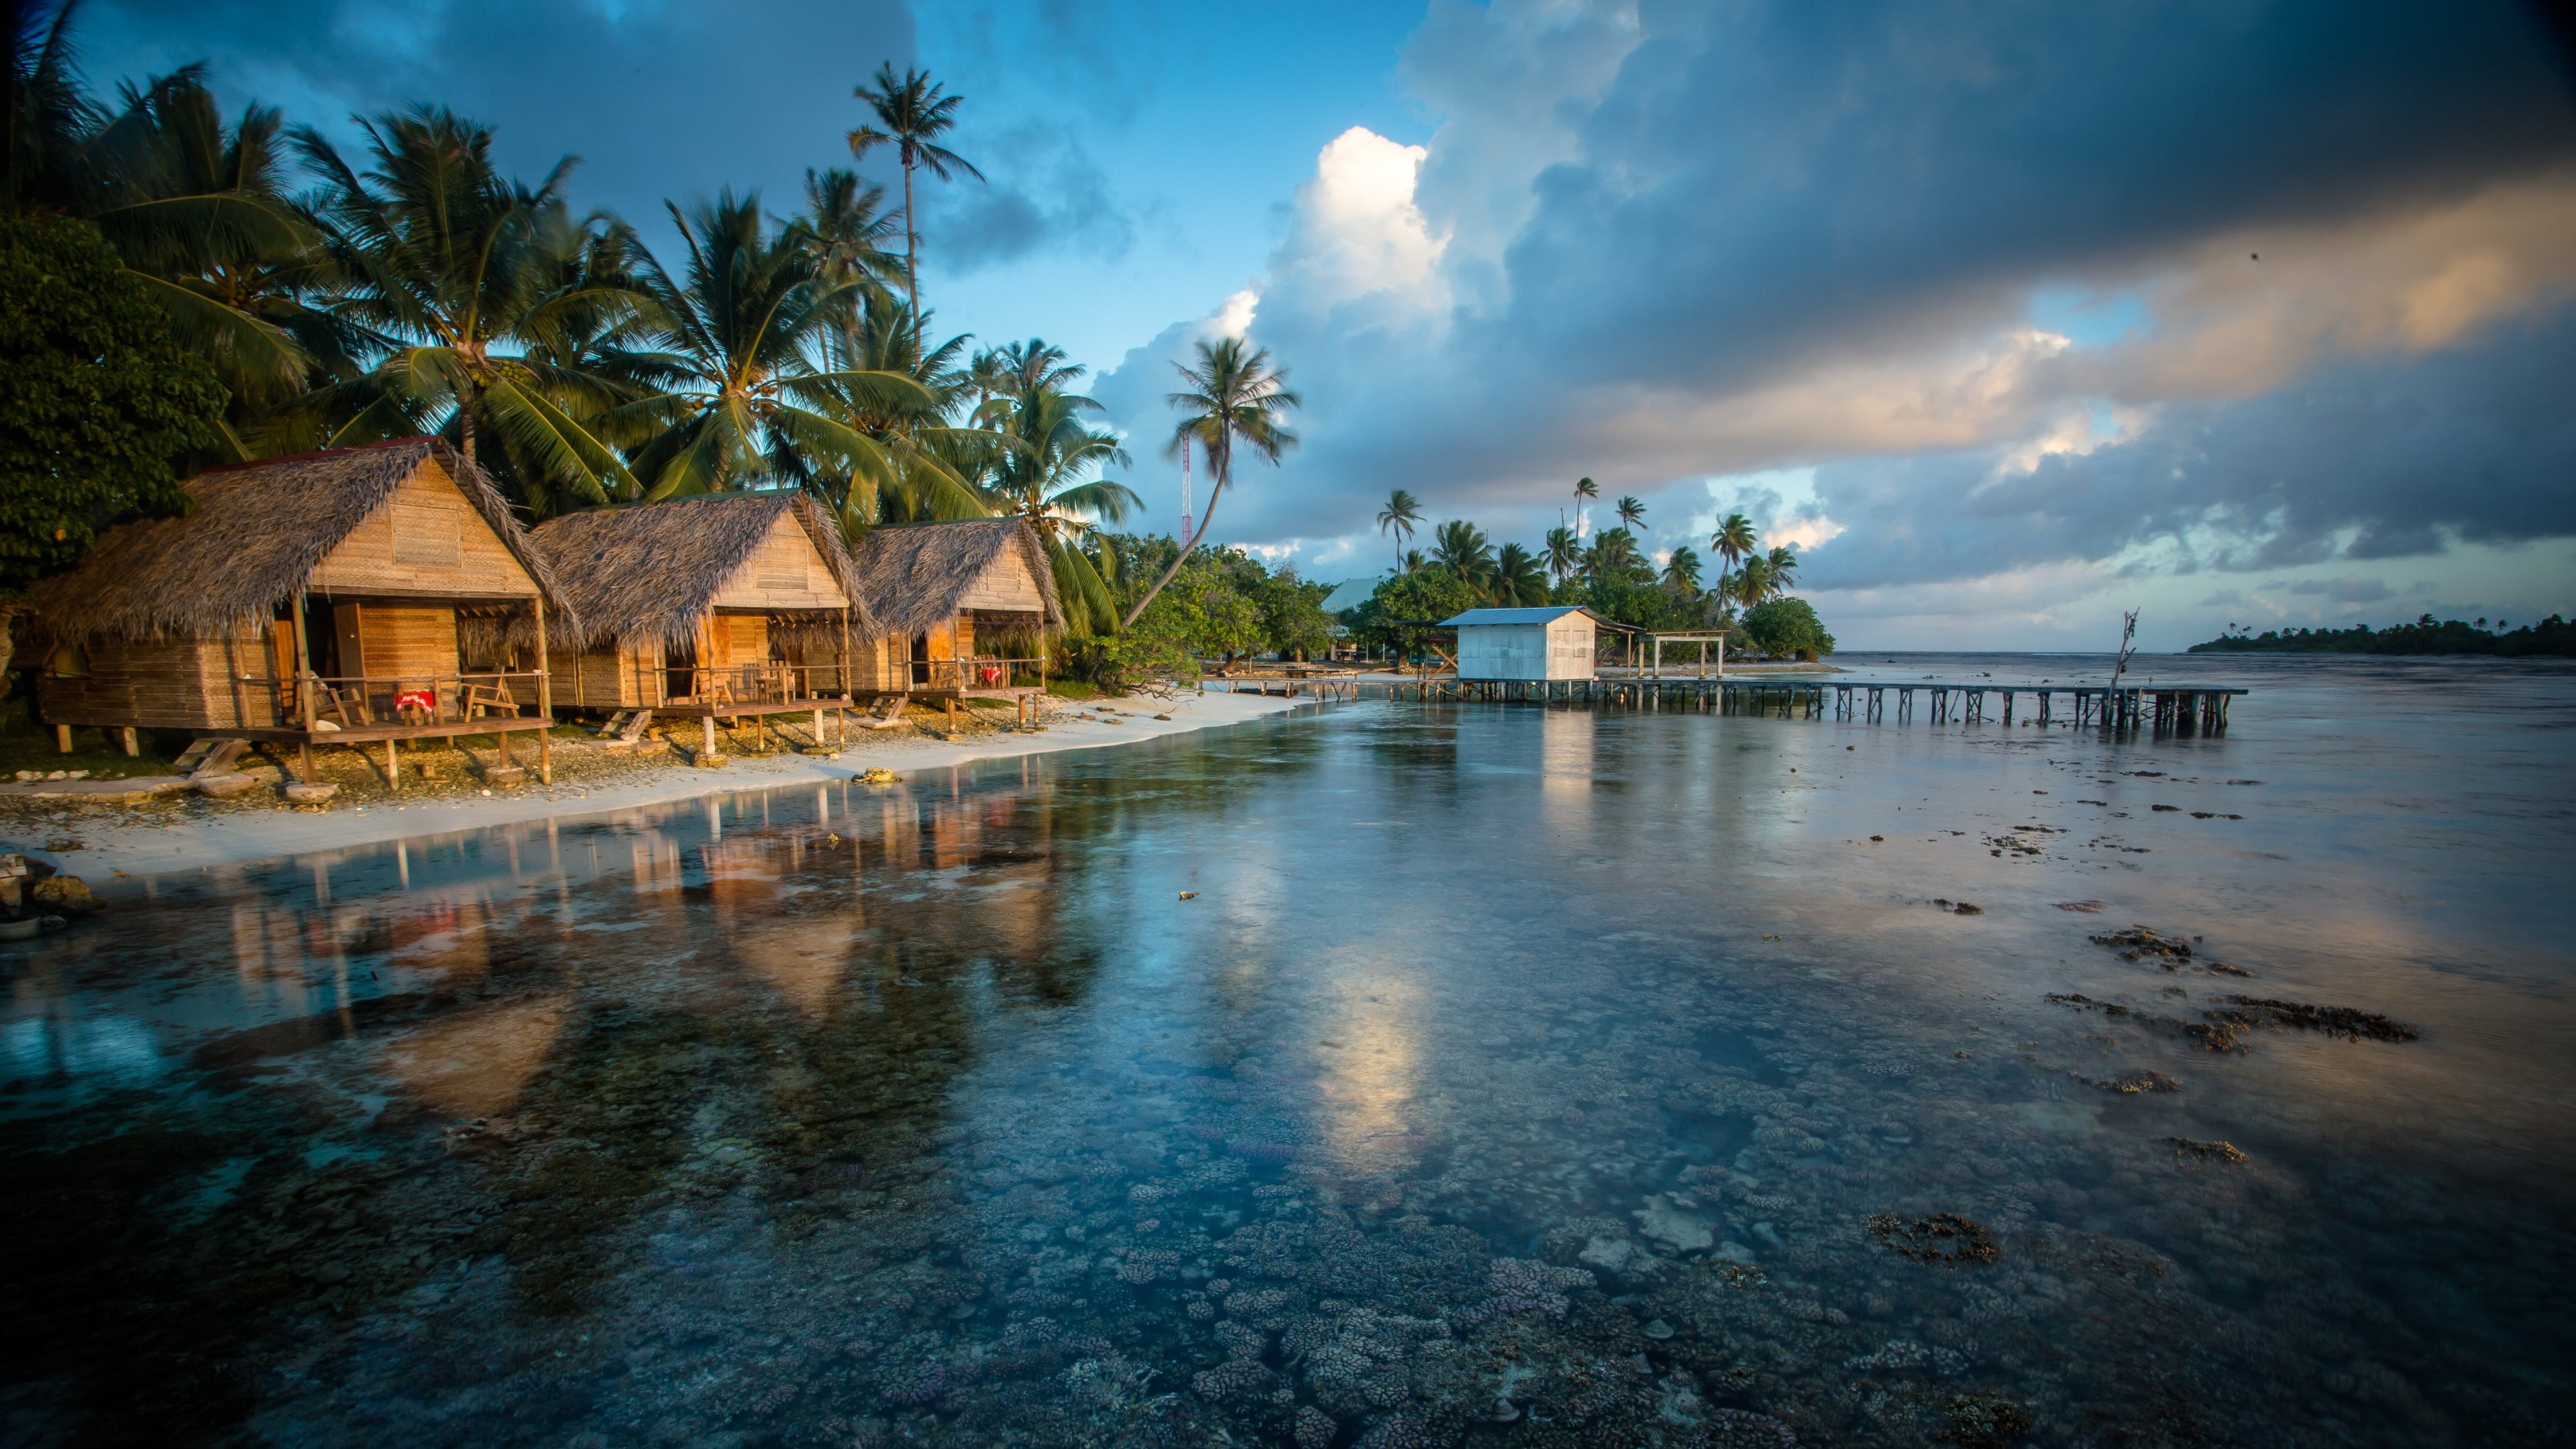 Wallpaper Bungalows 4k Hd Wallpaper Reef French Polynesia Water Clouds Palms World S